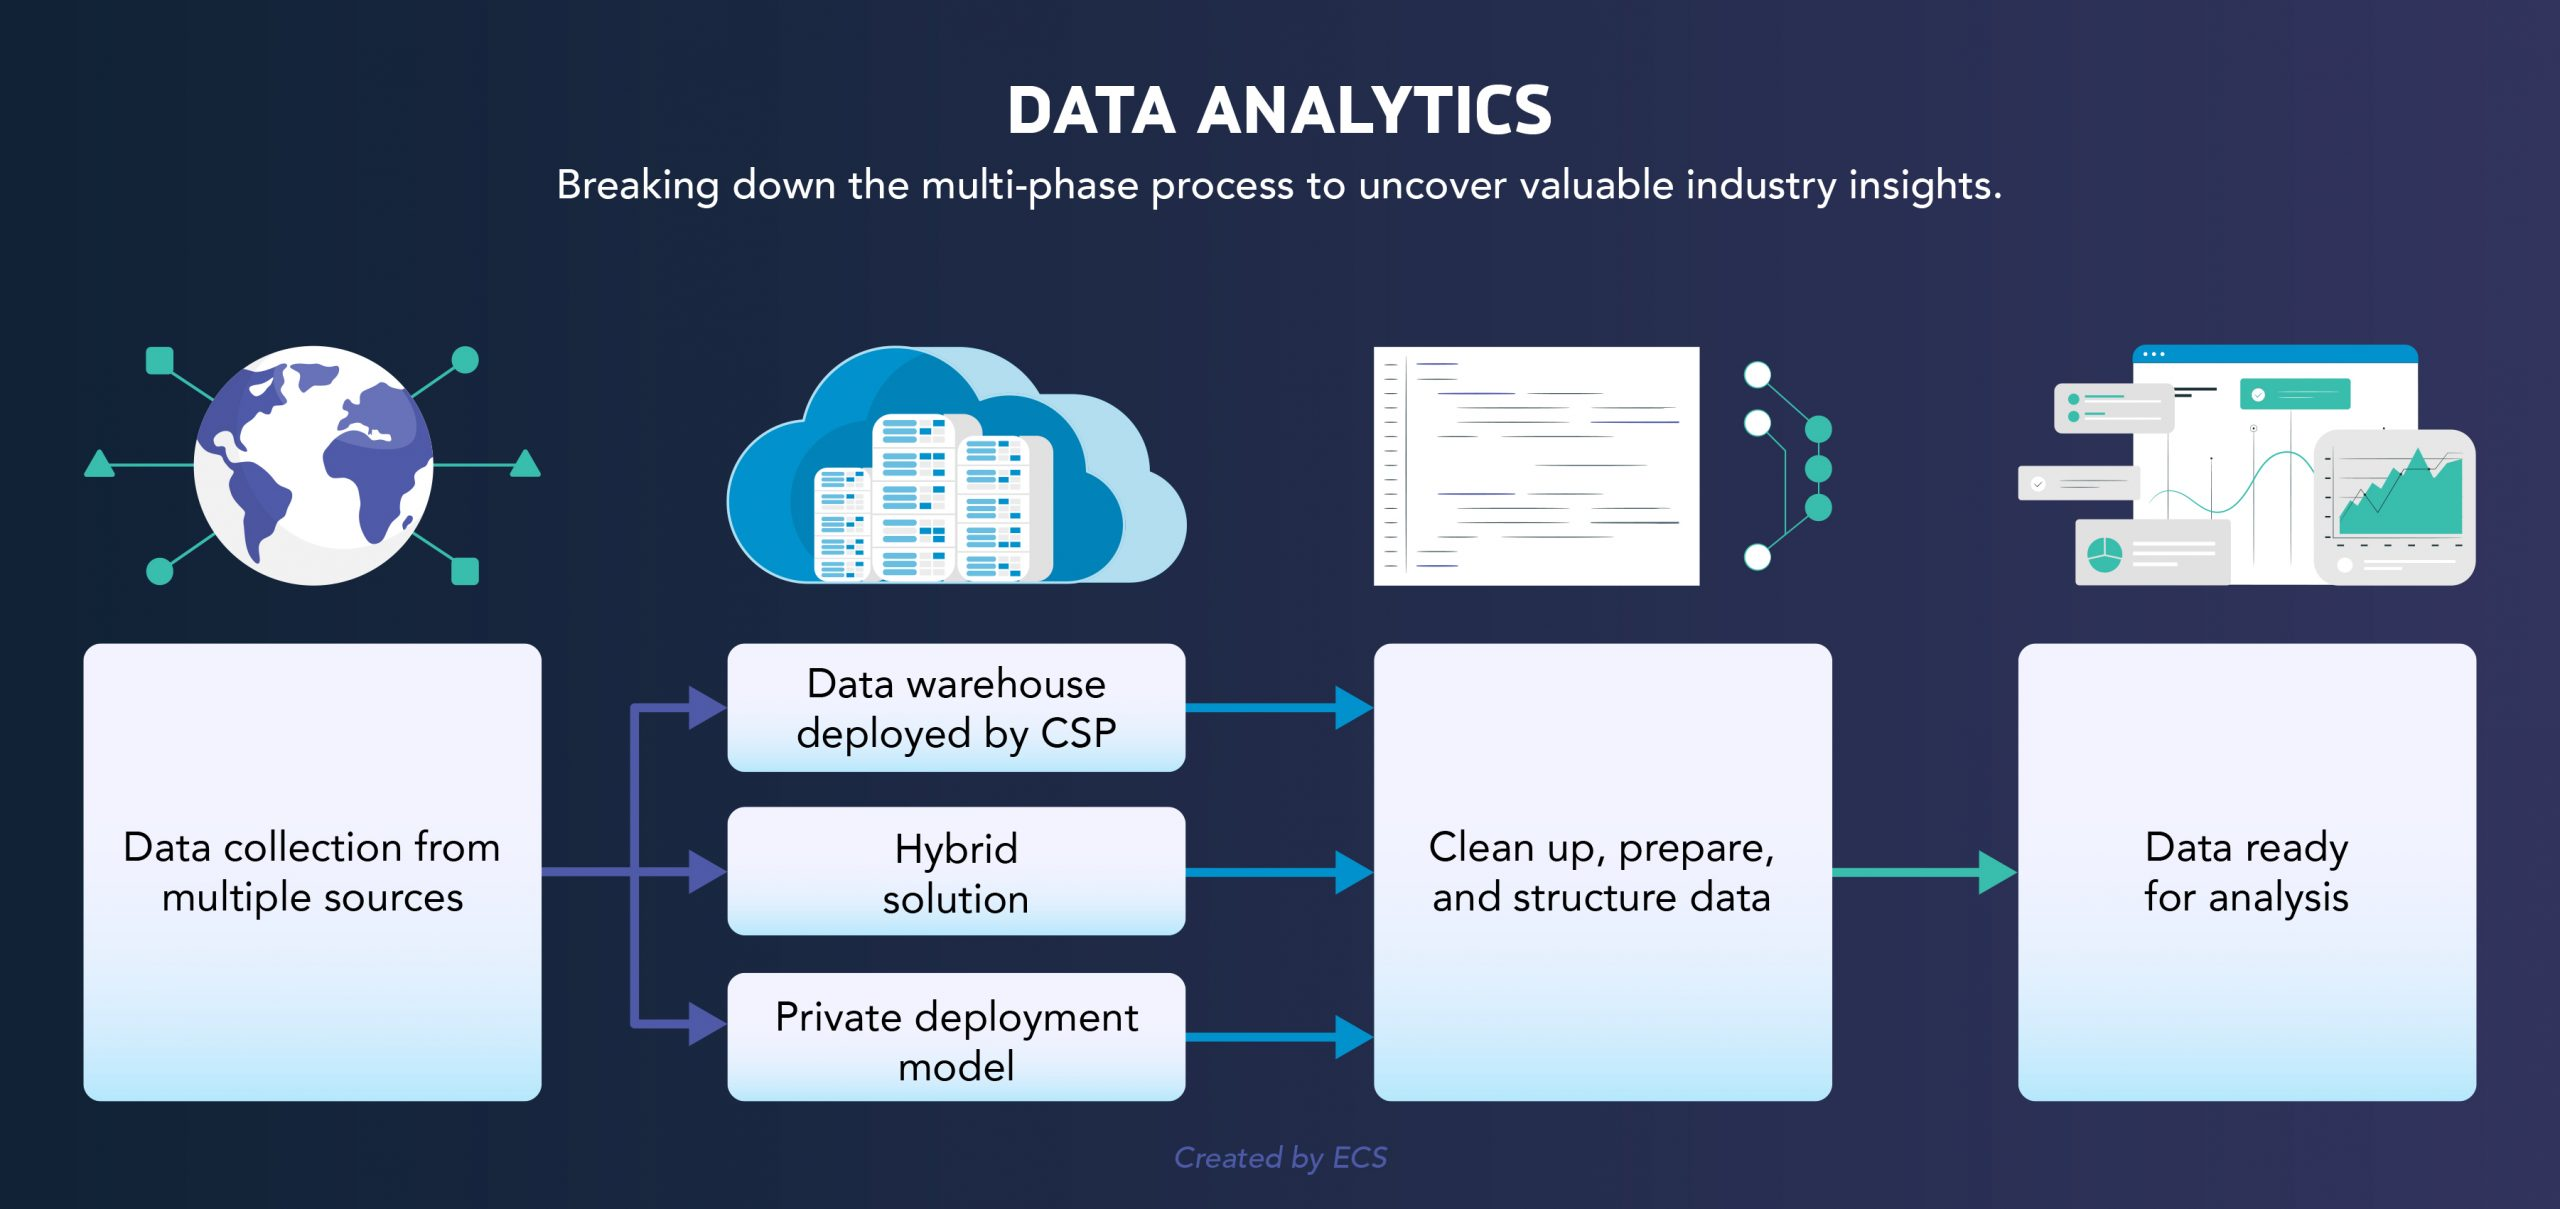 Data Analytic: Breaking down the multi-phase process to uncover valuable industry insights.